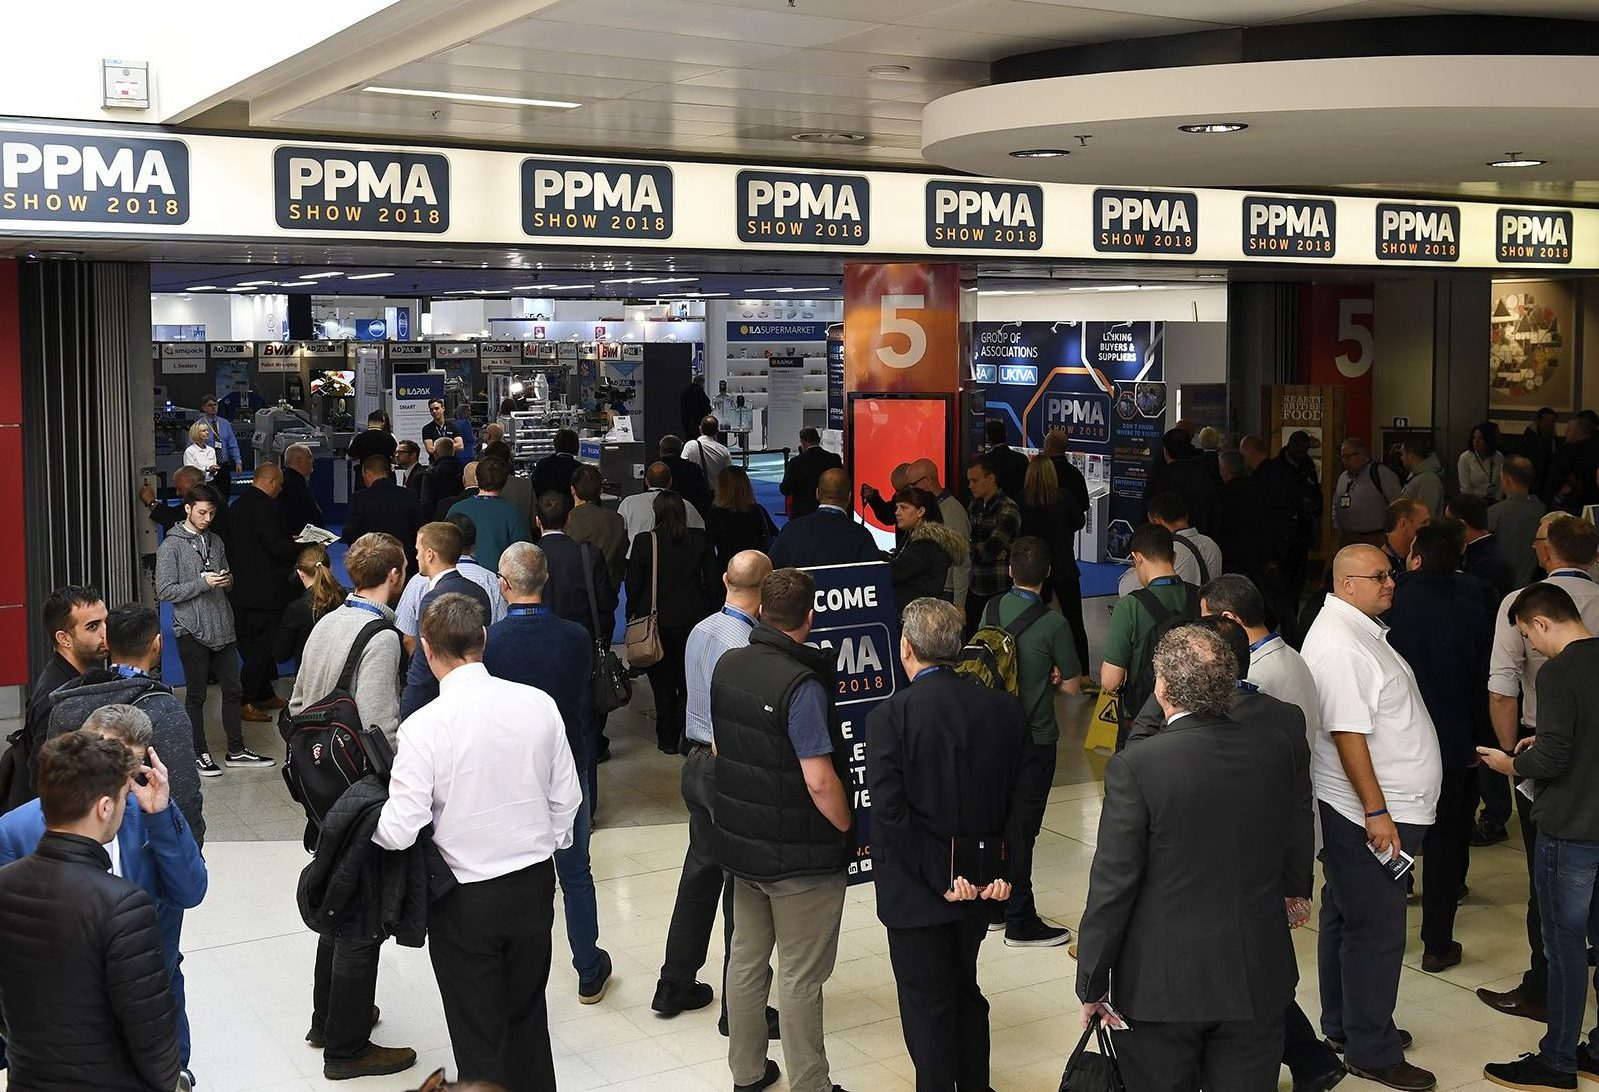 PPMA 2018 packaging trade show, Birmingham.